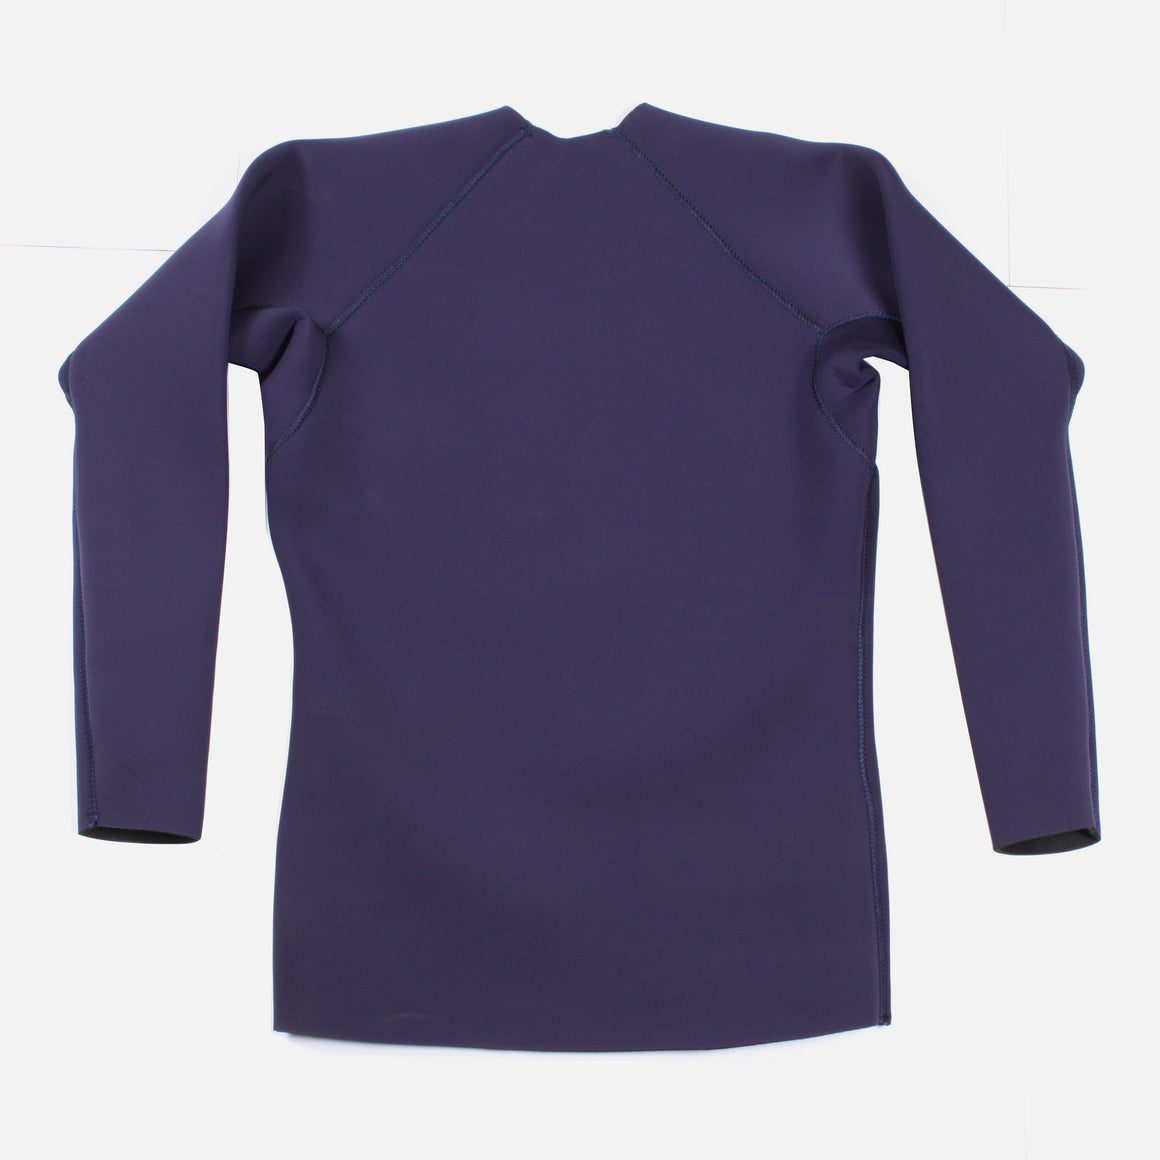 Wetsuit Top - Deep Purple